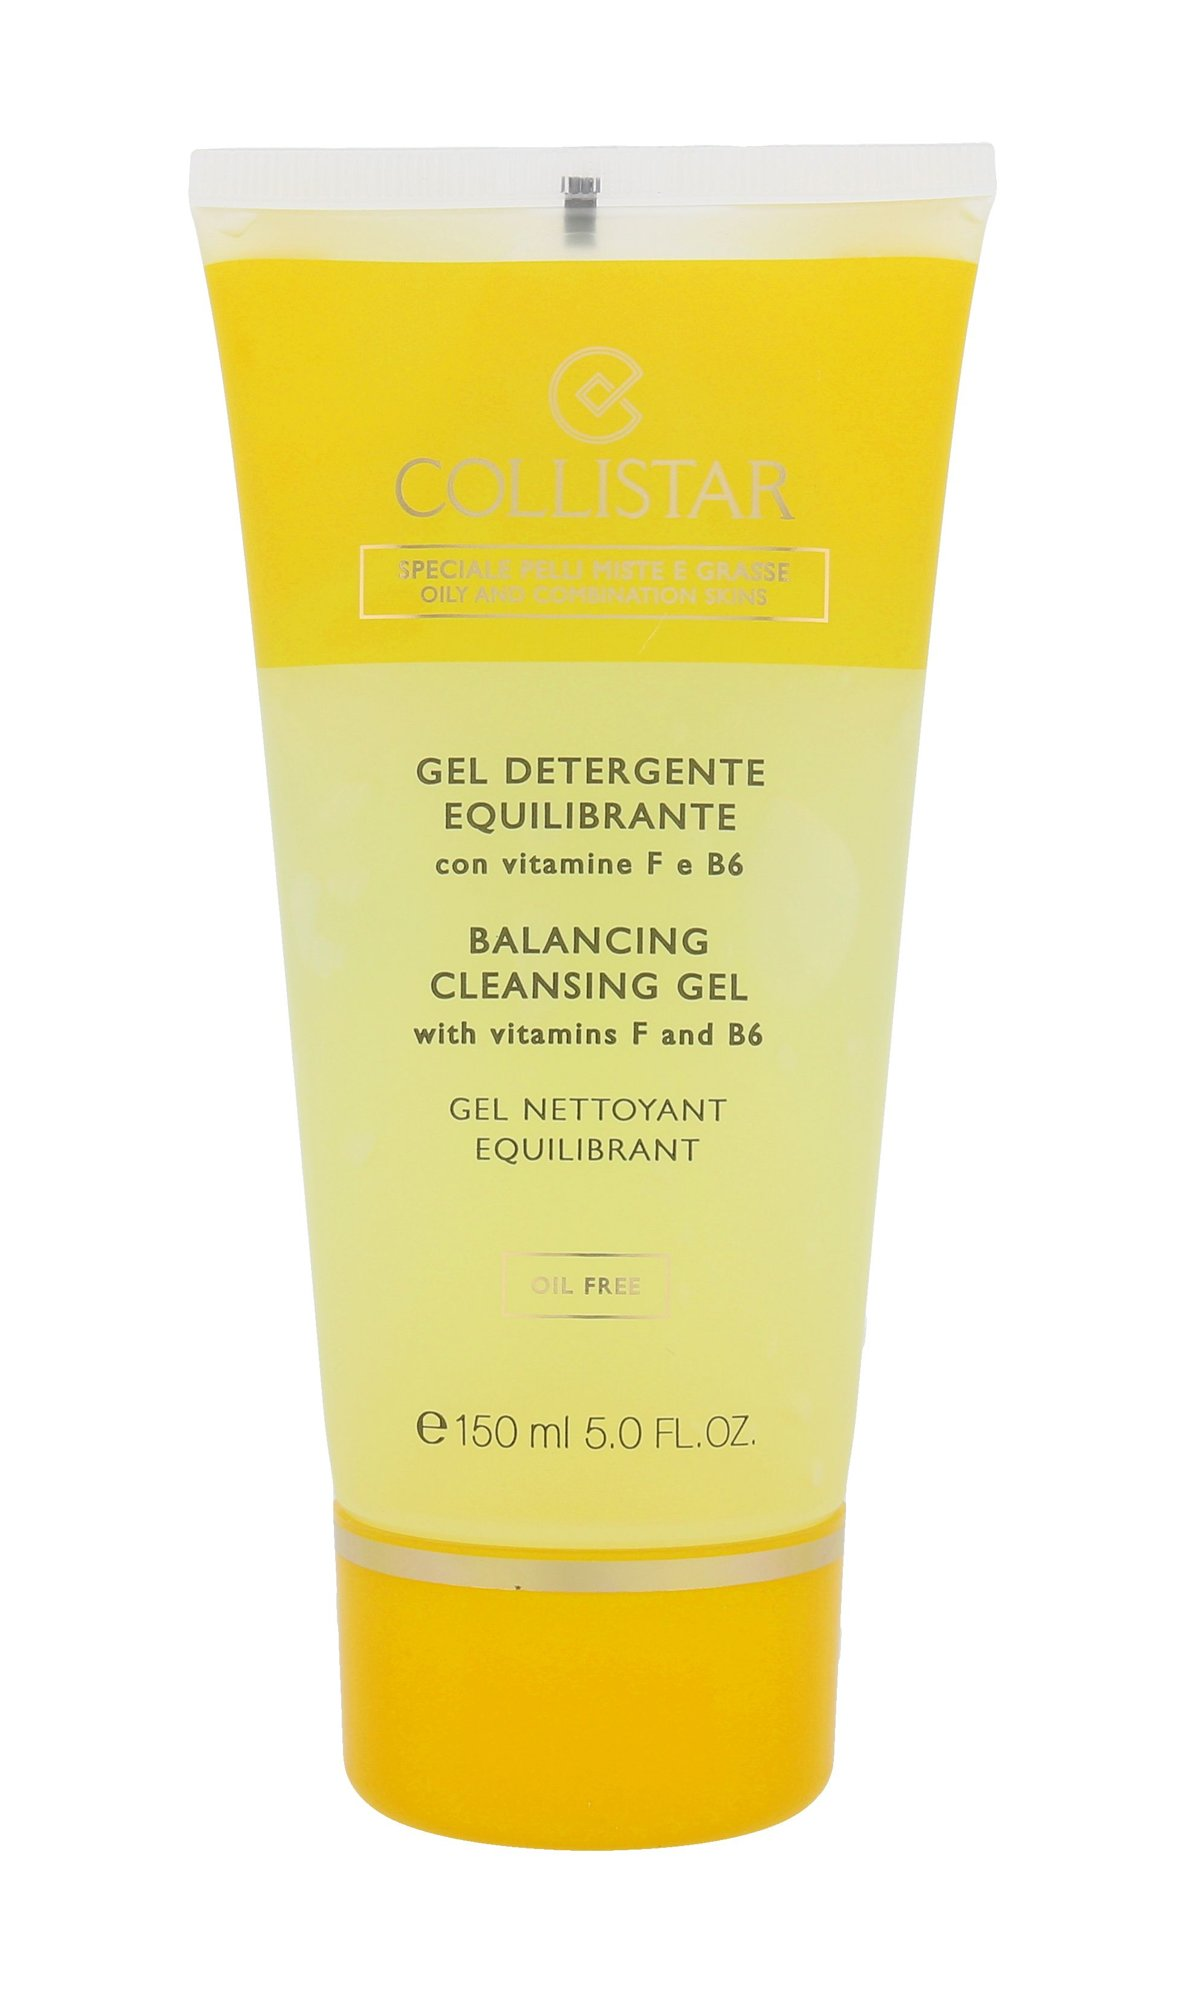 Collistar Special Combination and Oily Skins Cosmetic 150ml